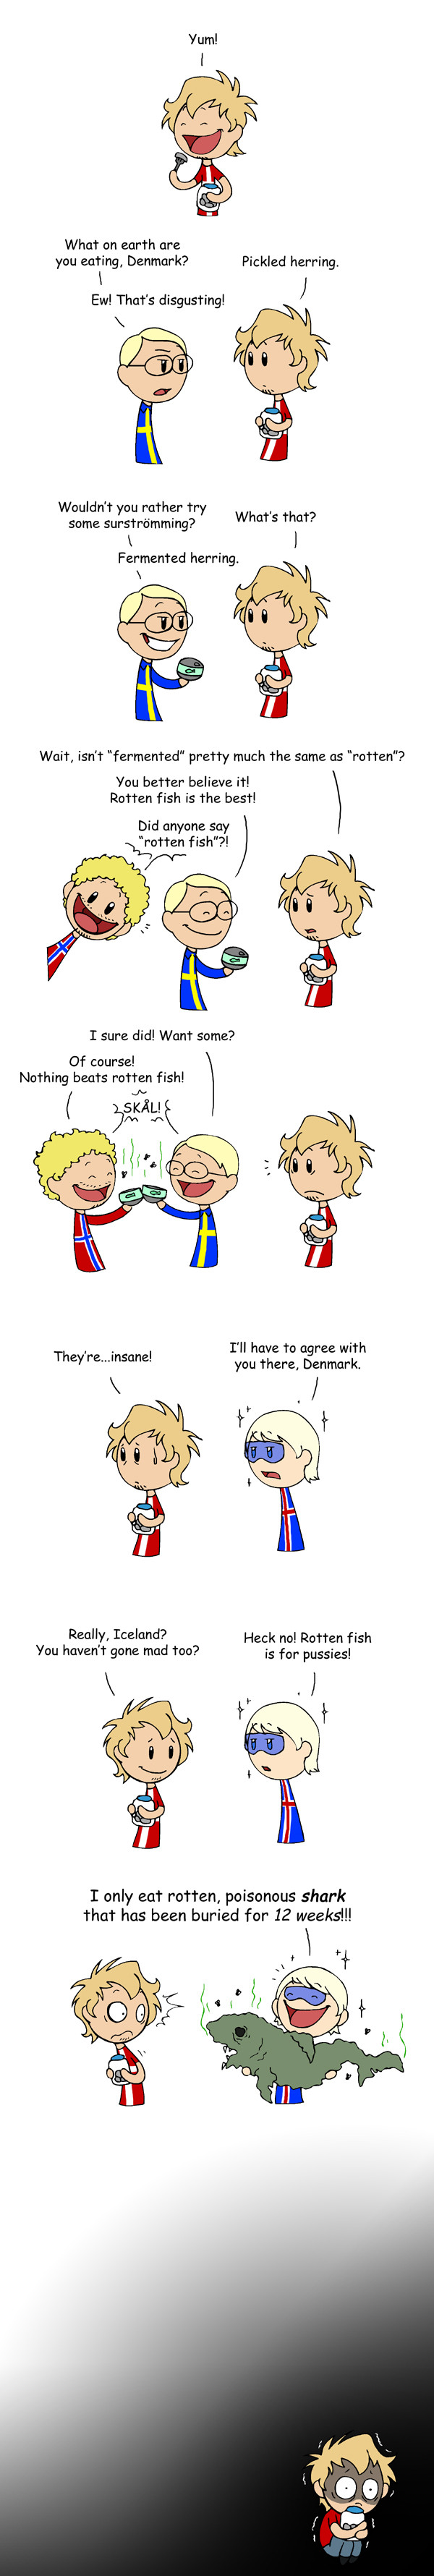 How It Is To Be Danish Scandinavia Country Jokes Nordic